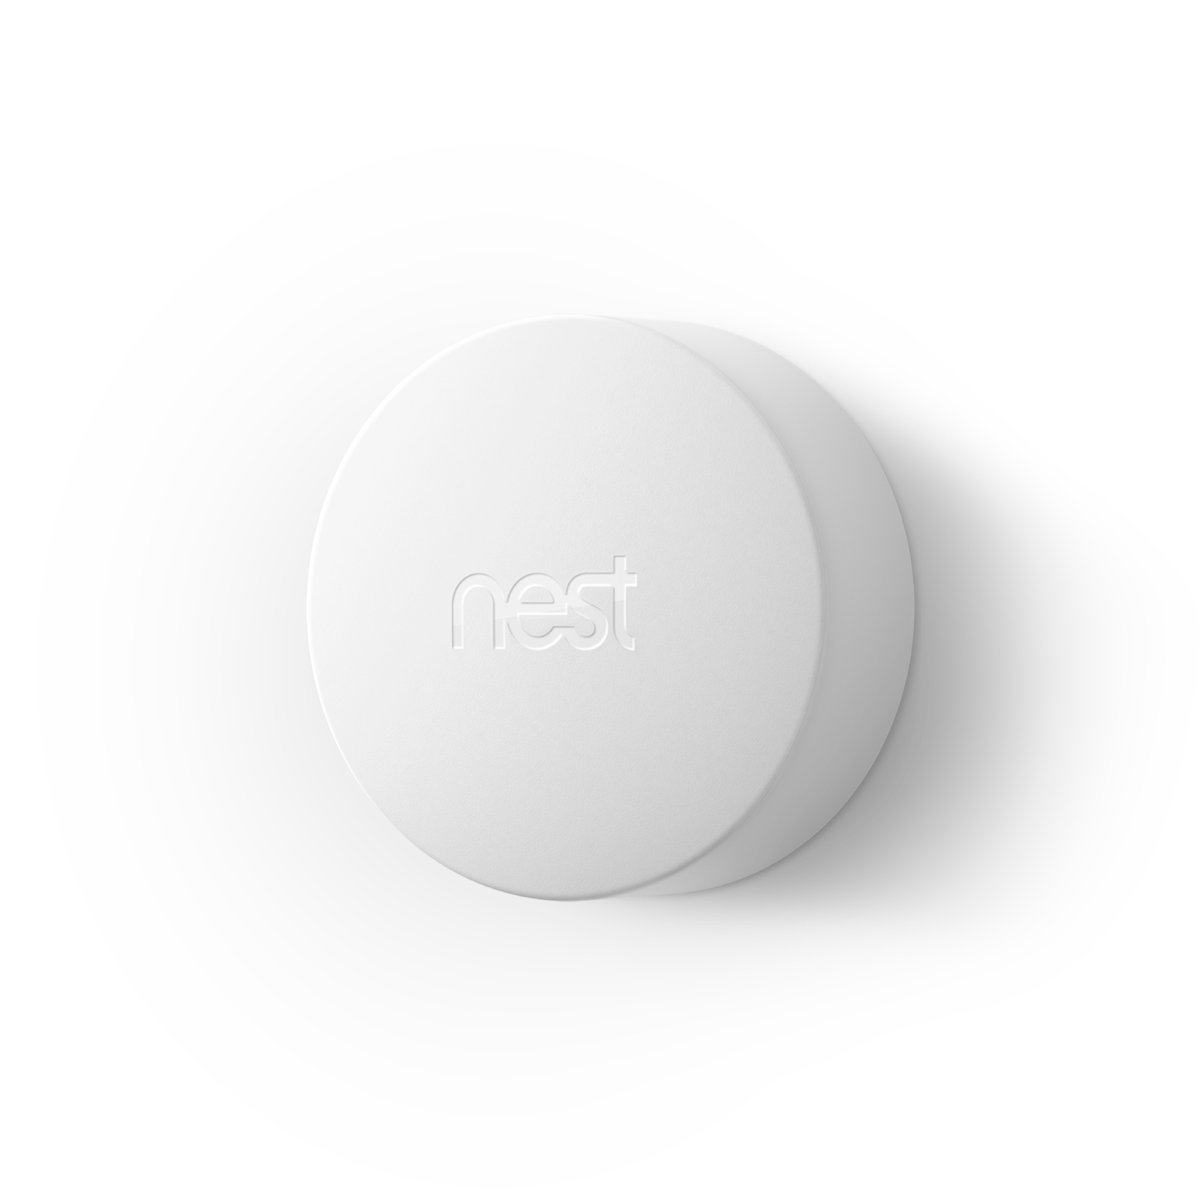 Google Nest Temperature Sensor- Realtor